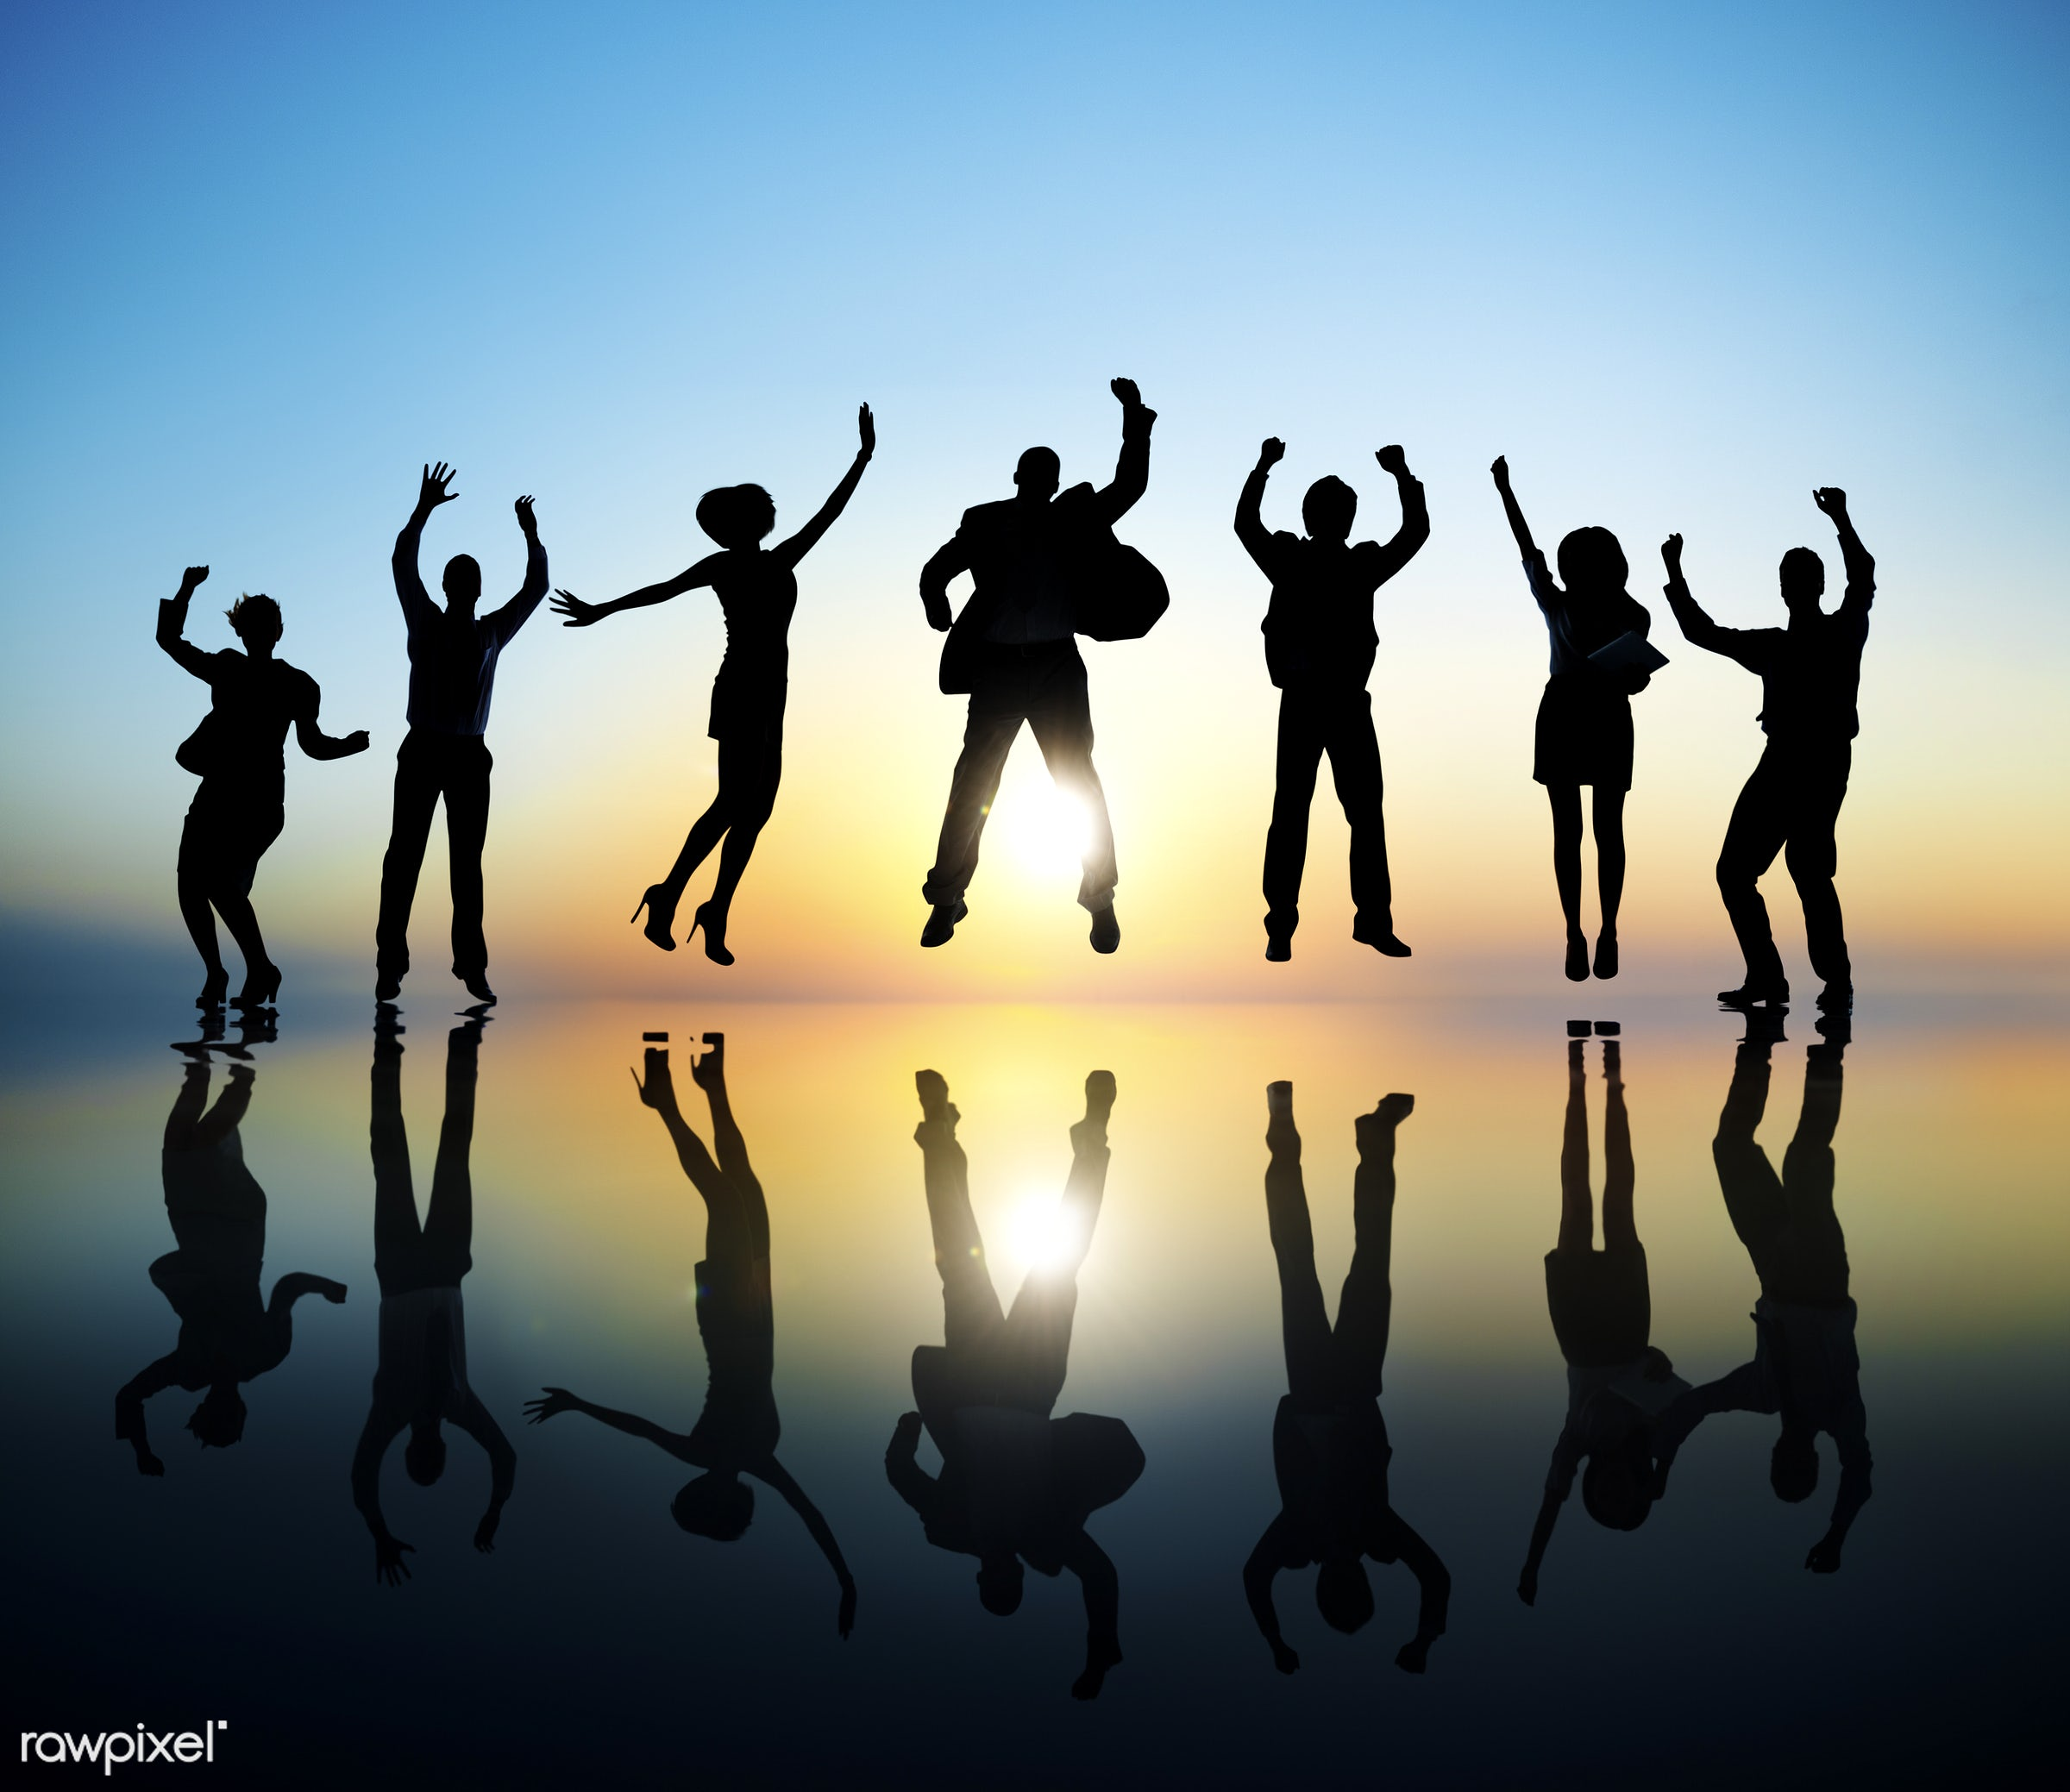 adult, arms outstretched, arms raised, body language, business, business people, businessmen, businesswomen, celebration,...